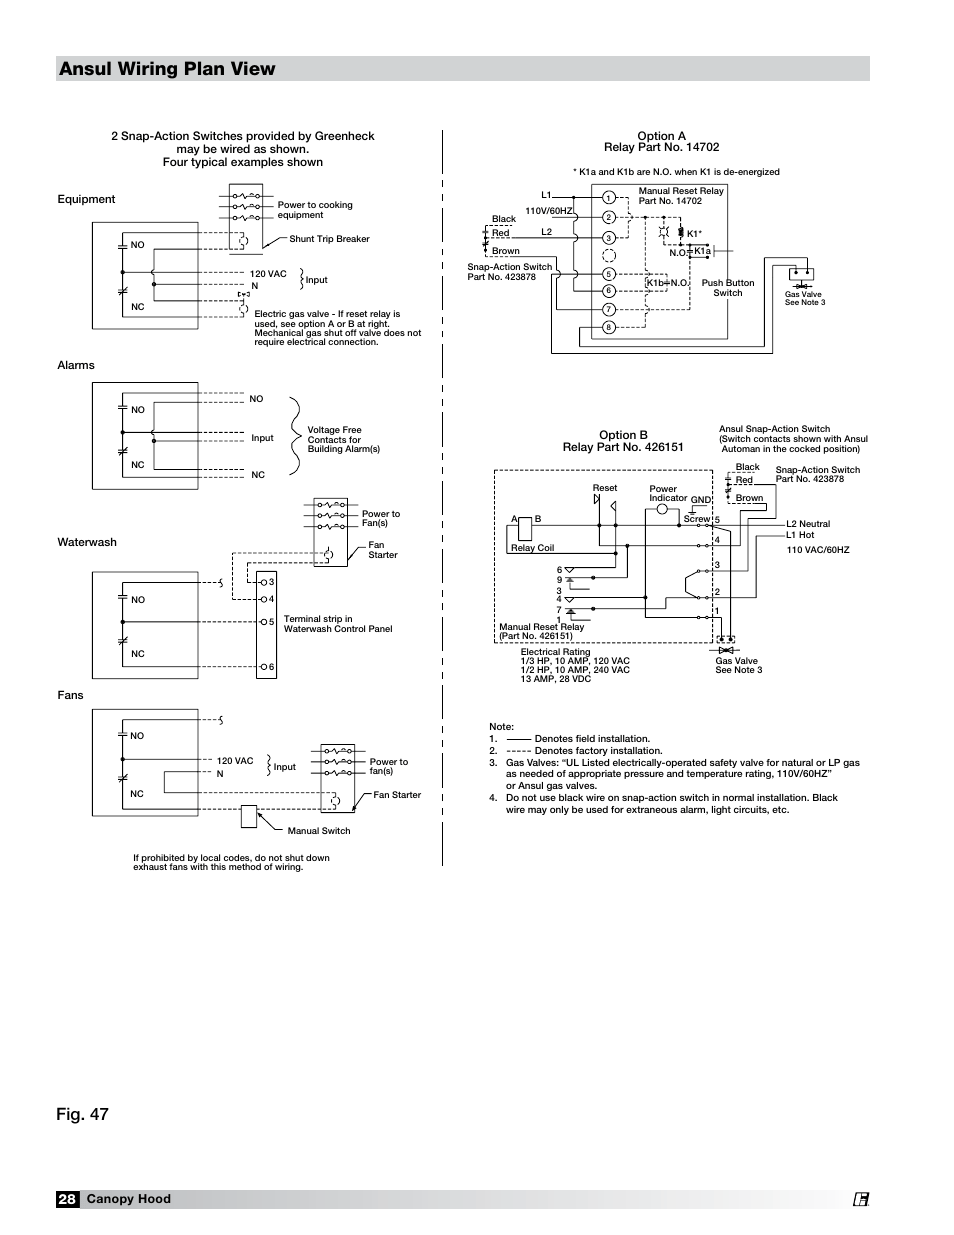 Snap Ansul System Wiring Diagram Electrical Atlas Switch Machine 200 Relay Controller 220 Elsalvadorla